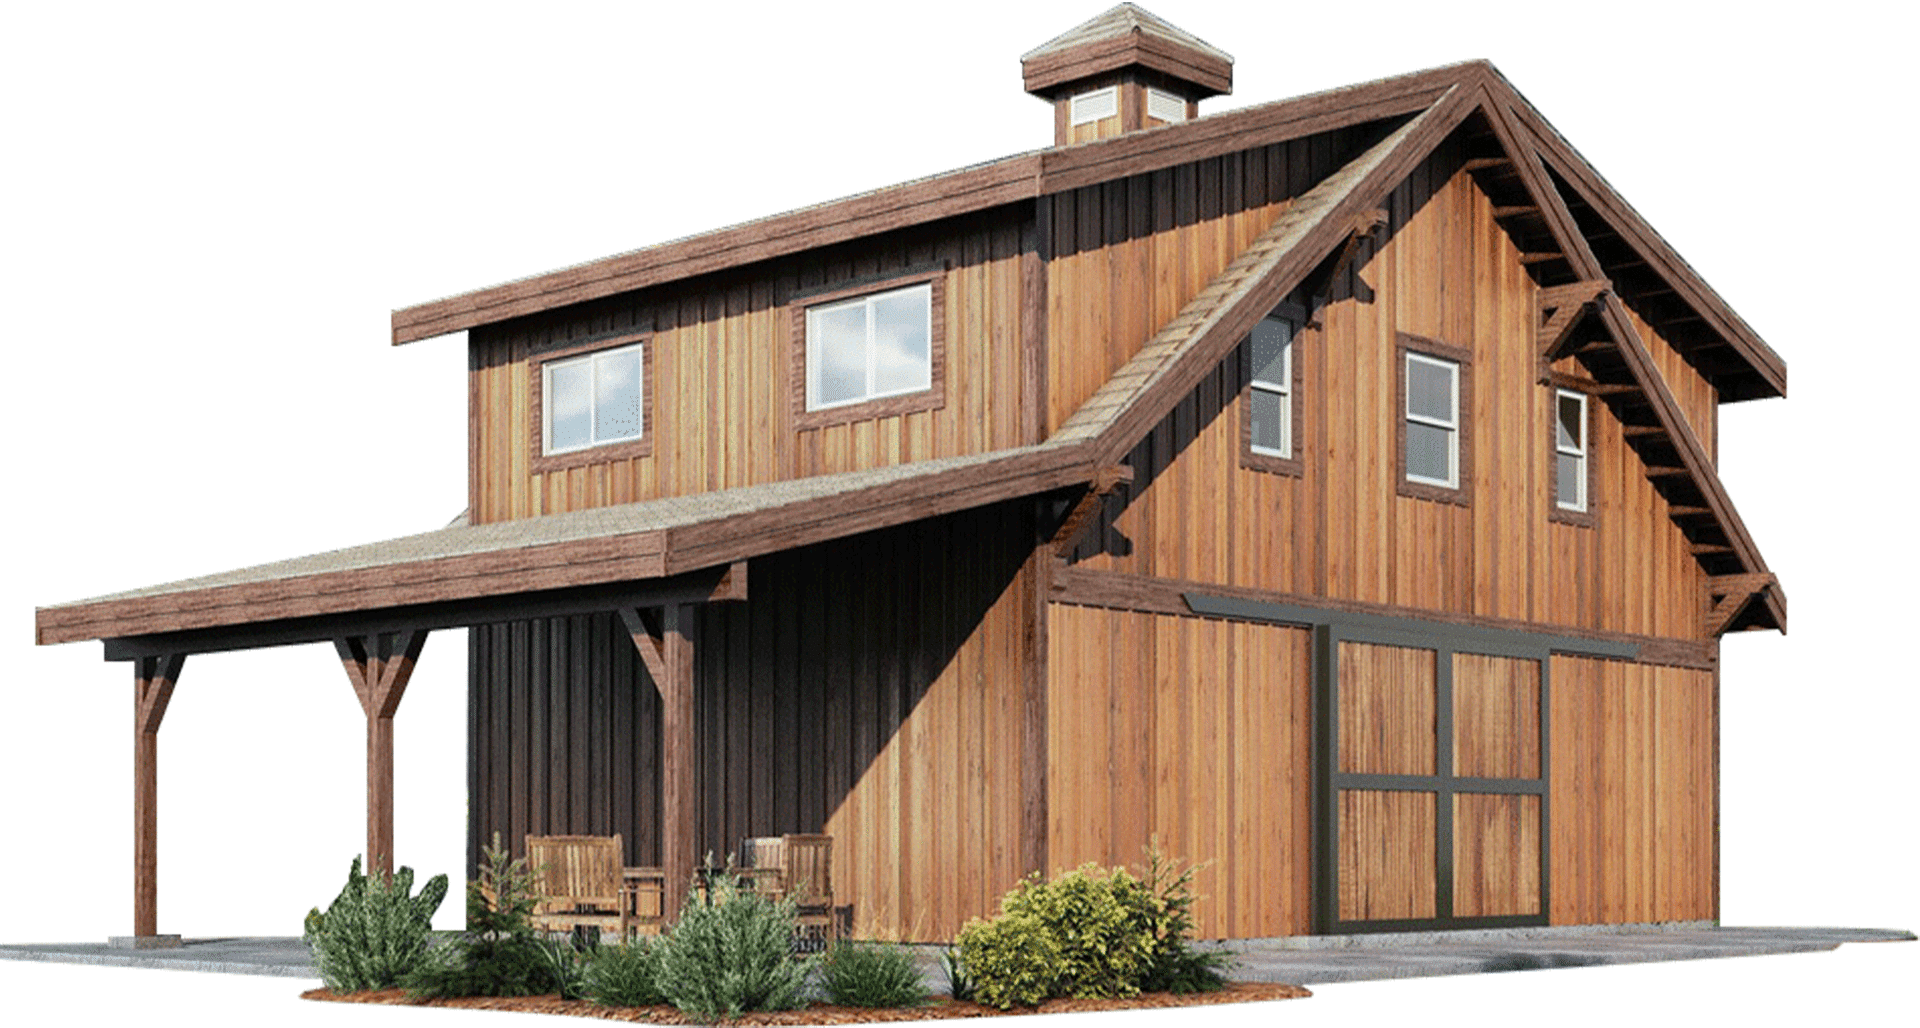 Oakridge Apartment Barn Kit - Wood Barn Home Kit - DC Structures on